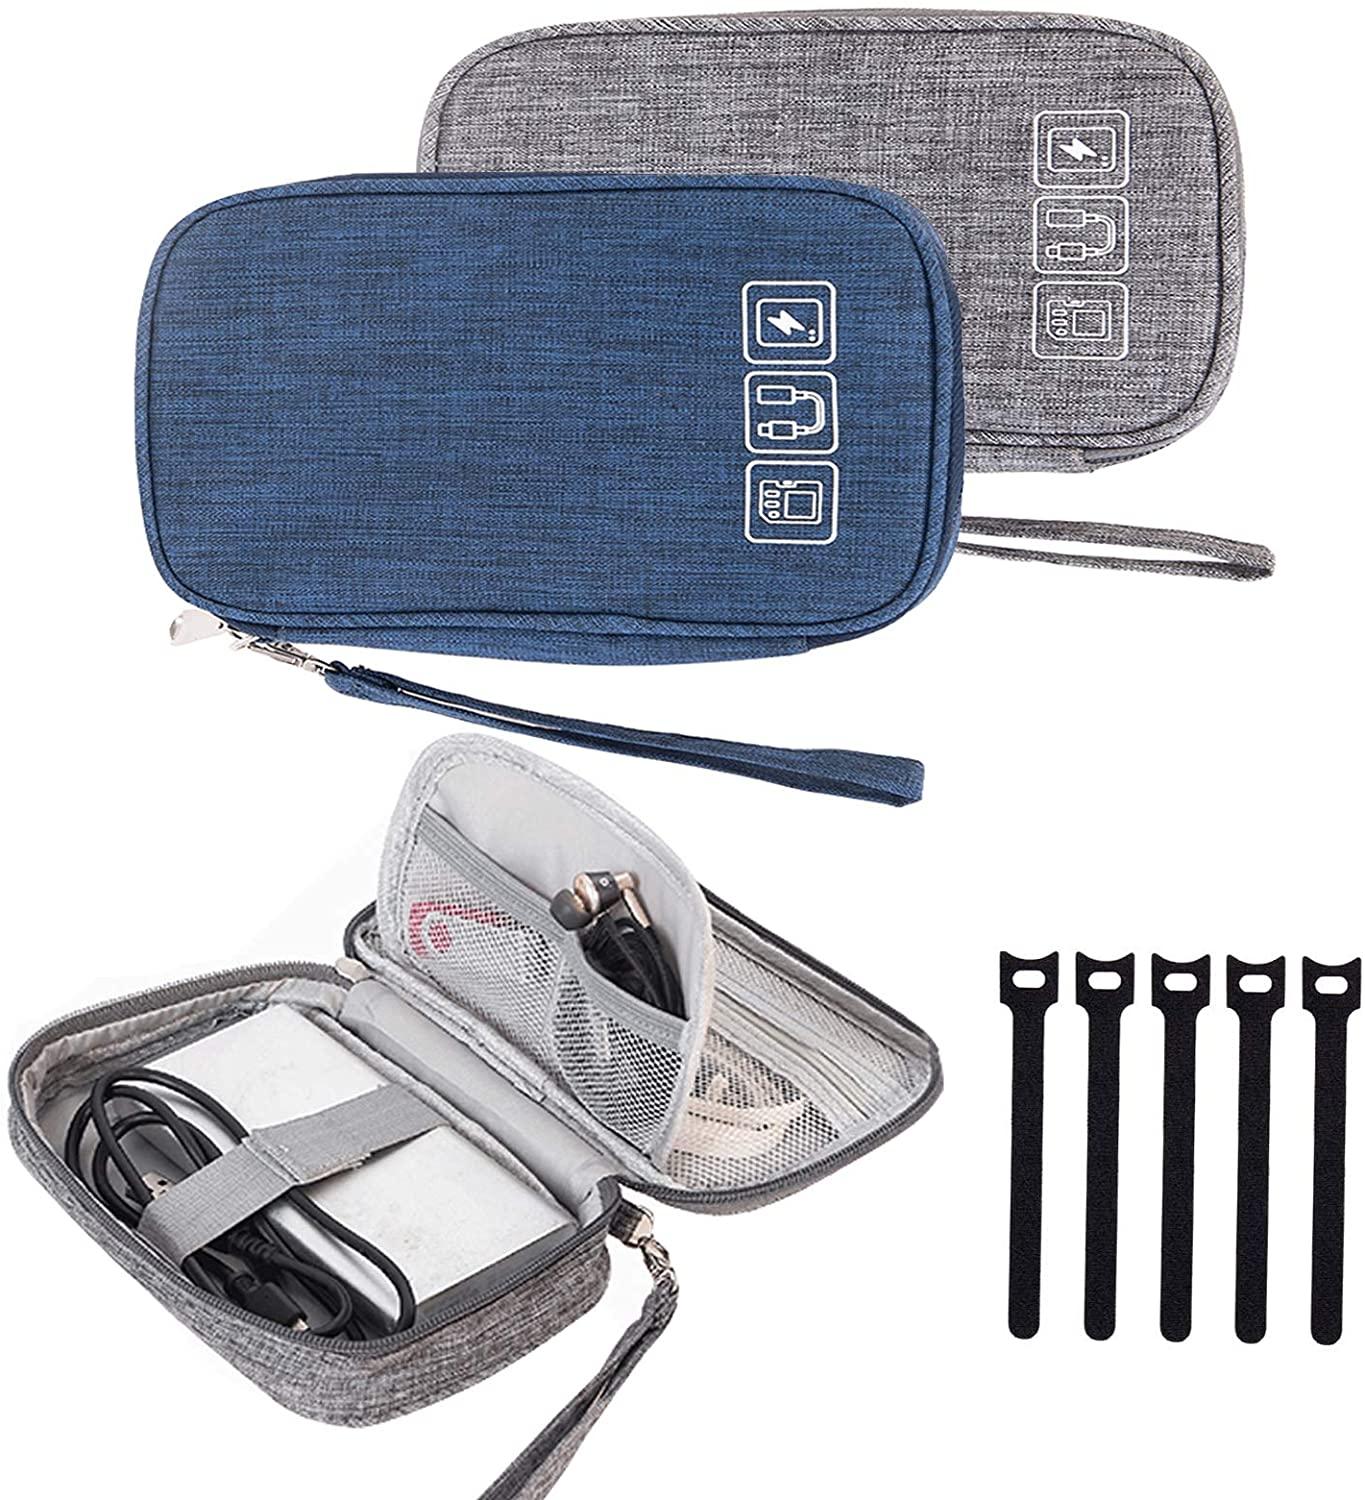 Cable Organizer Case, Travel Cord Organizer Case Small Electronic Accessories Carry Case Portable for Cable, Cord, Charger, Hard Drive, Earphone, USB,SD Card with 5 Cable Ties, 2Pack(Gray+Blue)